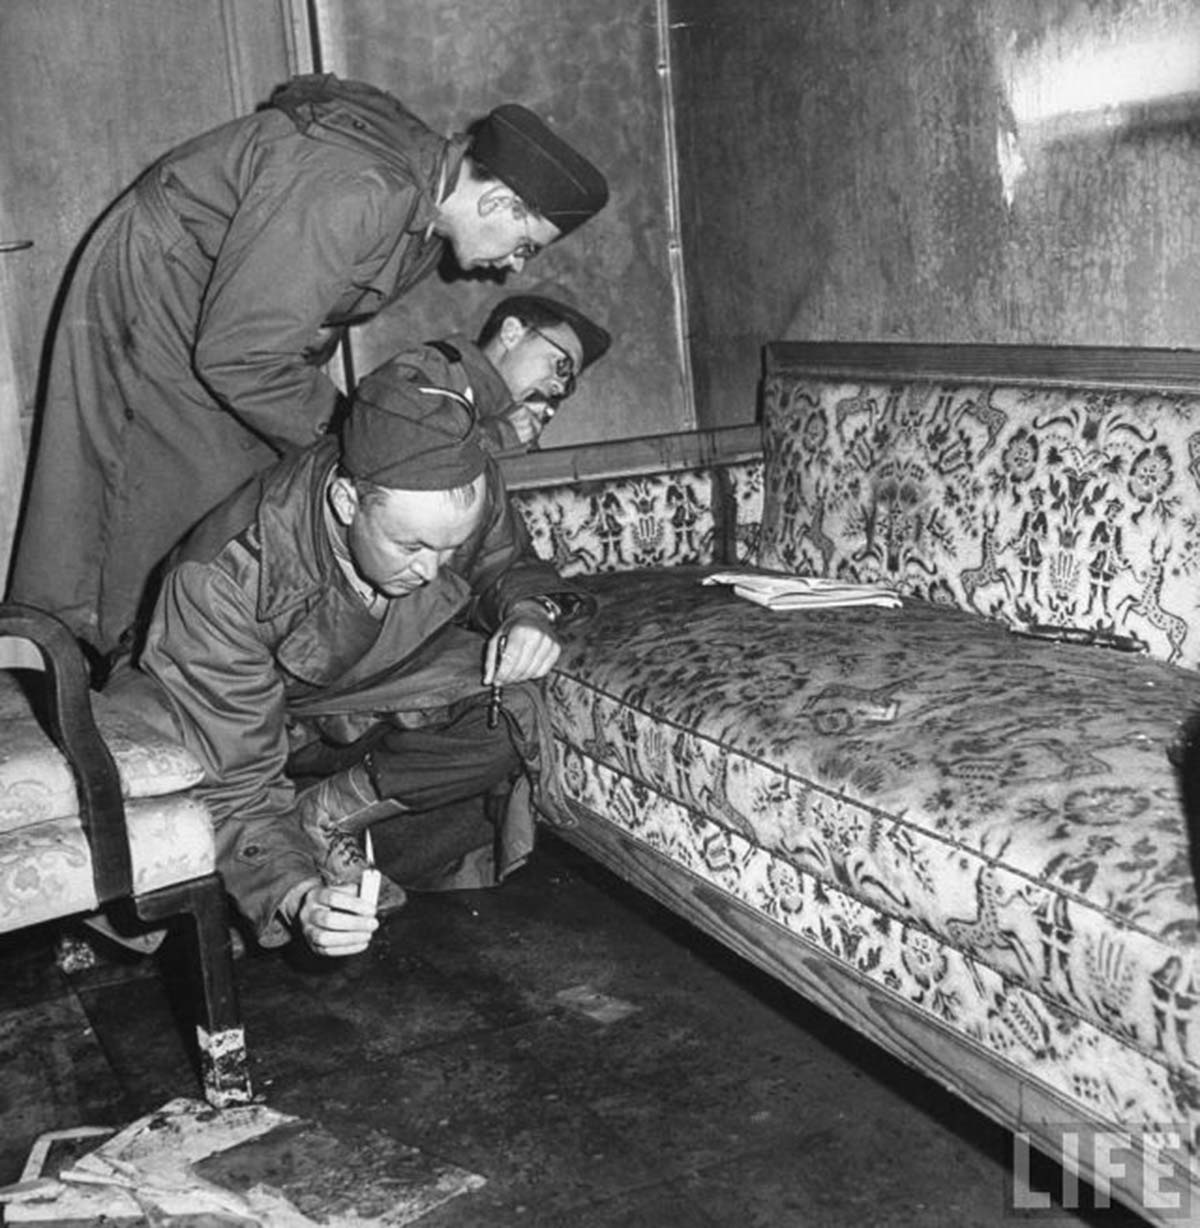 American soldiers inspect the couch where Adolf Hitler and Frau Hitler committed suicide. The soldier in the foreground appears to be looking at the bloodstains on the carpet. It would have been quite dark in there (without the photographer's flash) if all they had was candles. It would not surprising if this was some kind of